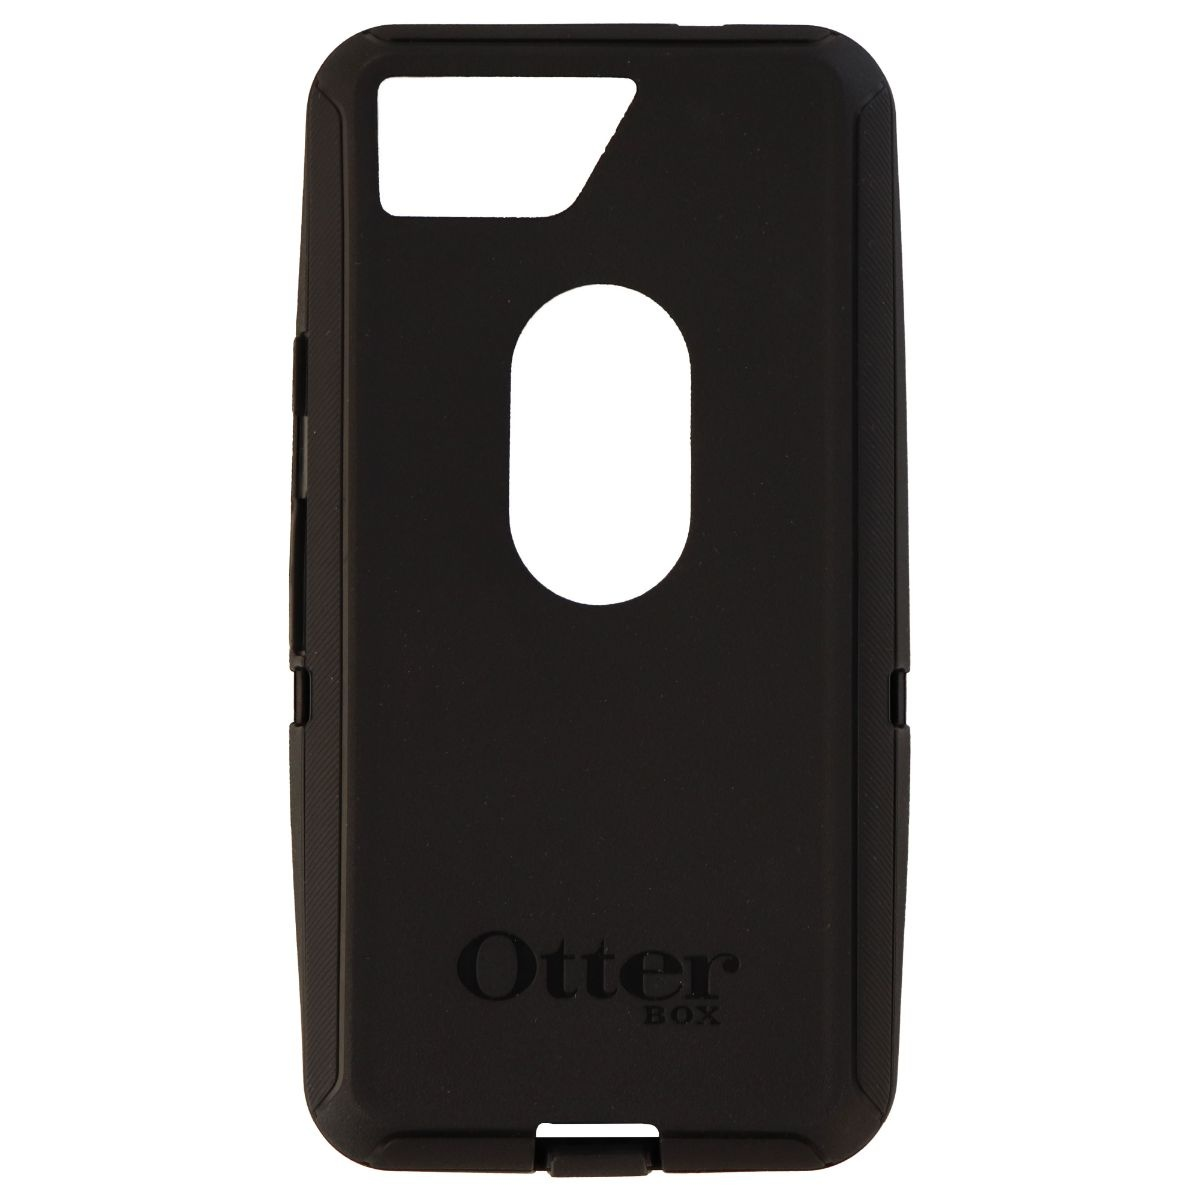 newest e0b14 f64ad OtterBox Defender Replacement Silicone Exterior Shell for Google ...